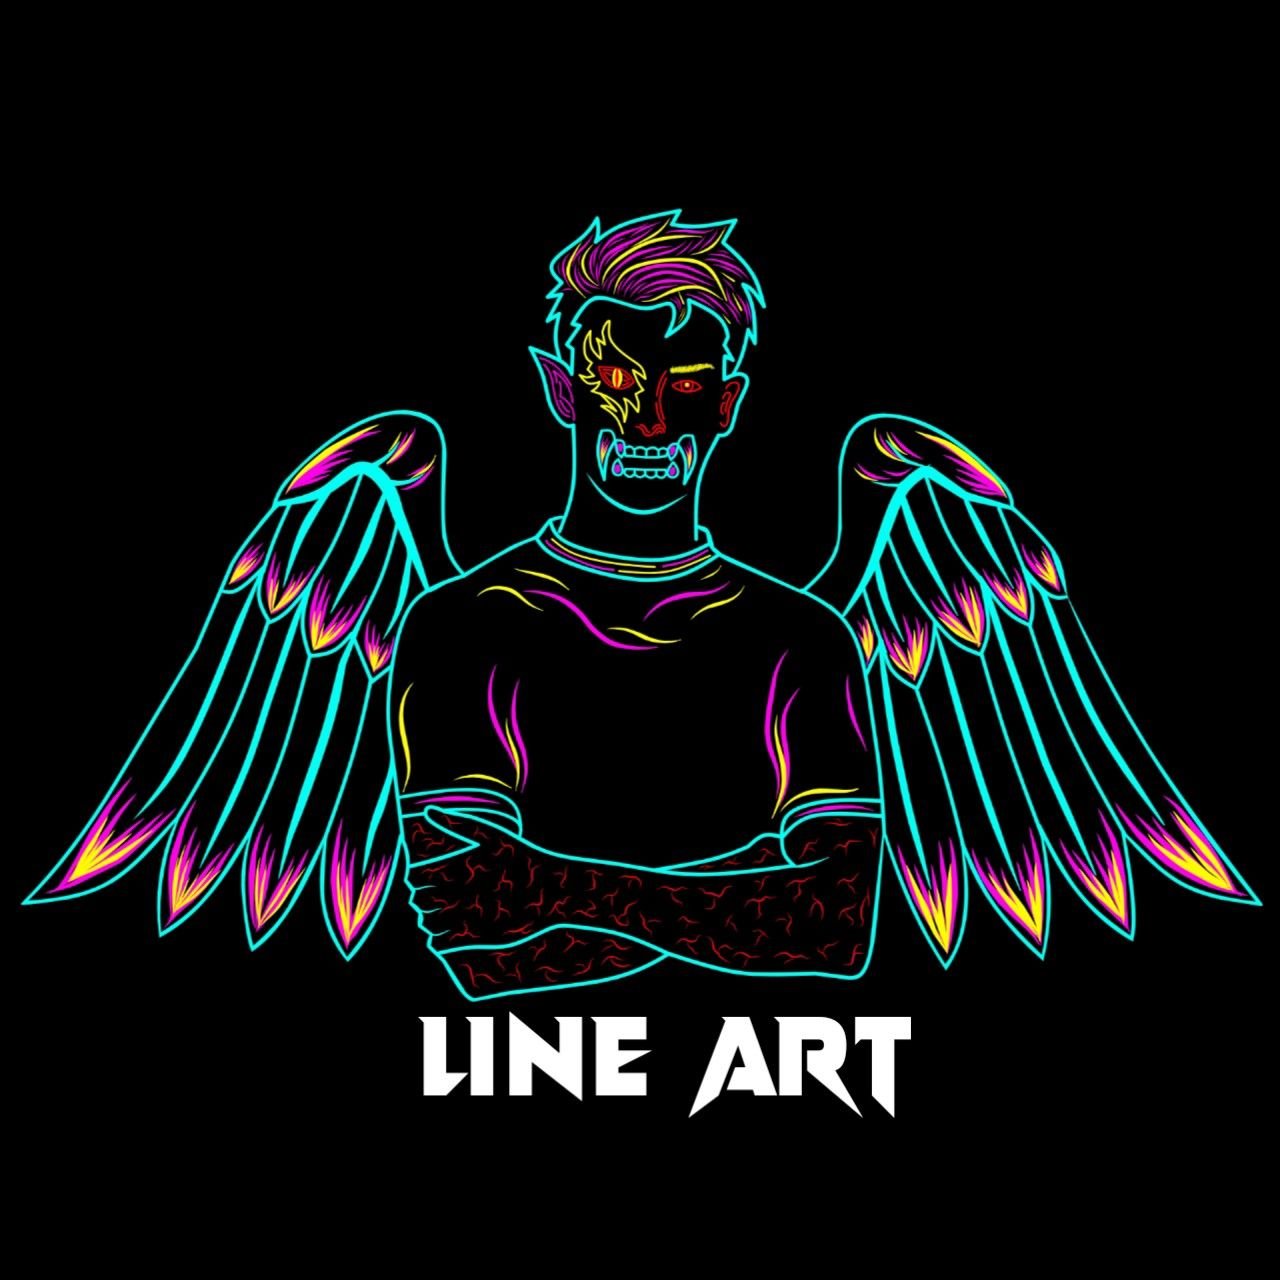 Line Art Vector Design Tutorial On Android Lineart Sayap Angel